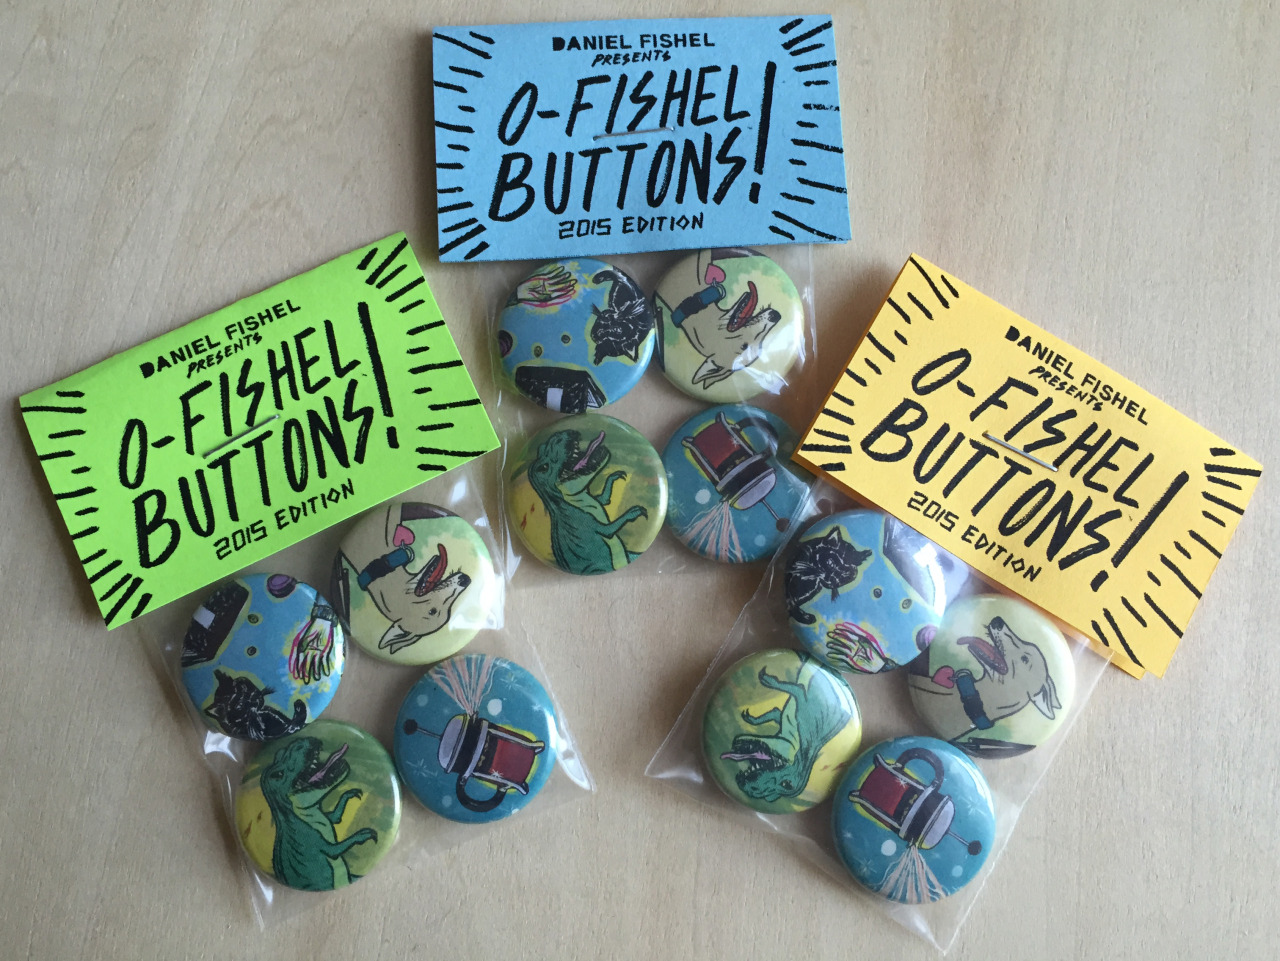 O-Fishel Buttons! - 2015 Limited Edition - $5 (Free US S+H)      O-Fishel Buttons! - 2015 Limited Edition - $5 (Free US S+H)     O-Fishel Buttons! - 2015 Limited Edition - $5 (Free US S+H)     O-Fishel Buttons! - 2015 Limited Edition - $5 (Free US S+H)     O-Fishel Buttons! - 2015 Limited Edition - $5 (Free US S+H)     O-Fishel Buttons! - 2015 Limited Edition - $5 (Free US S+H)